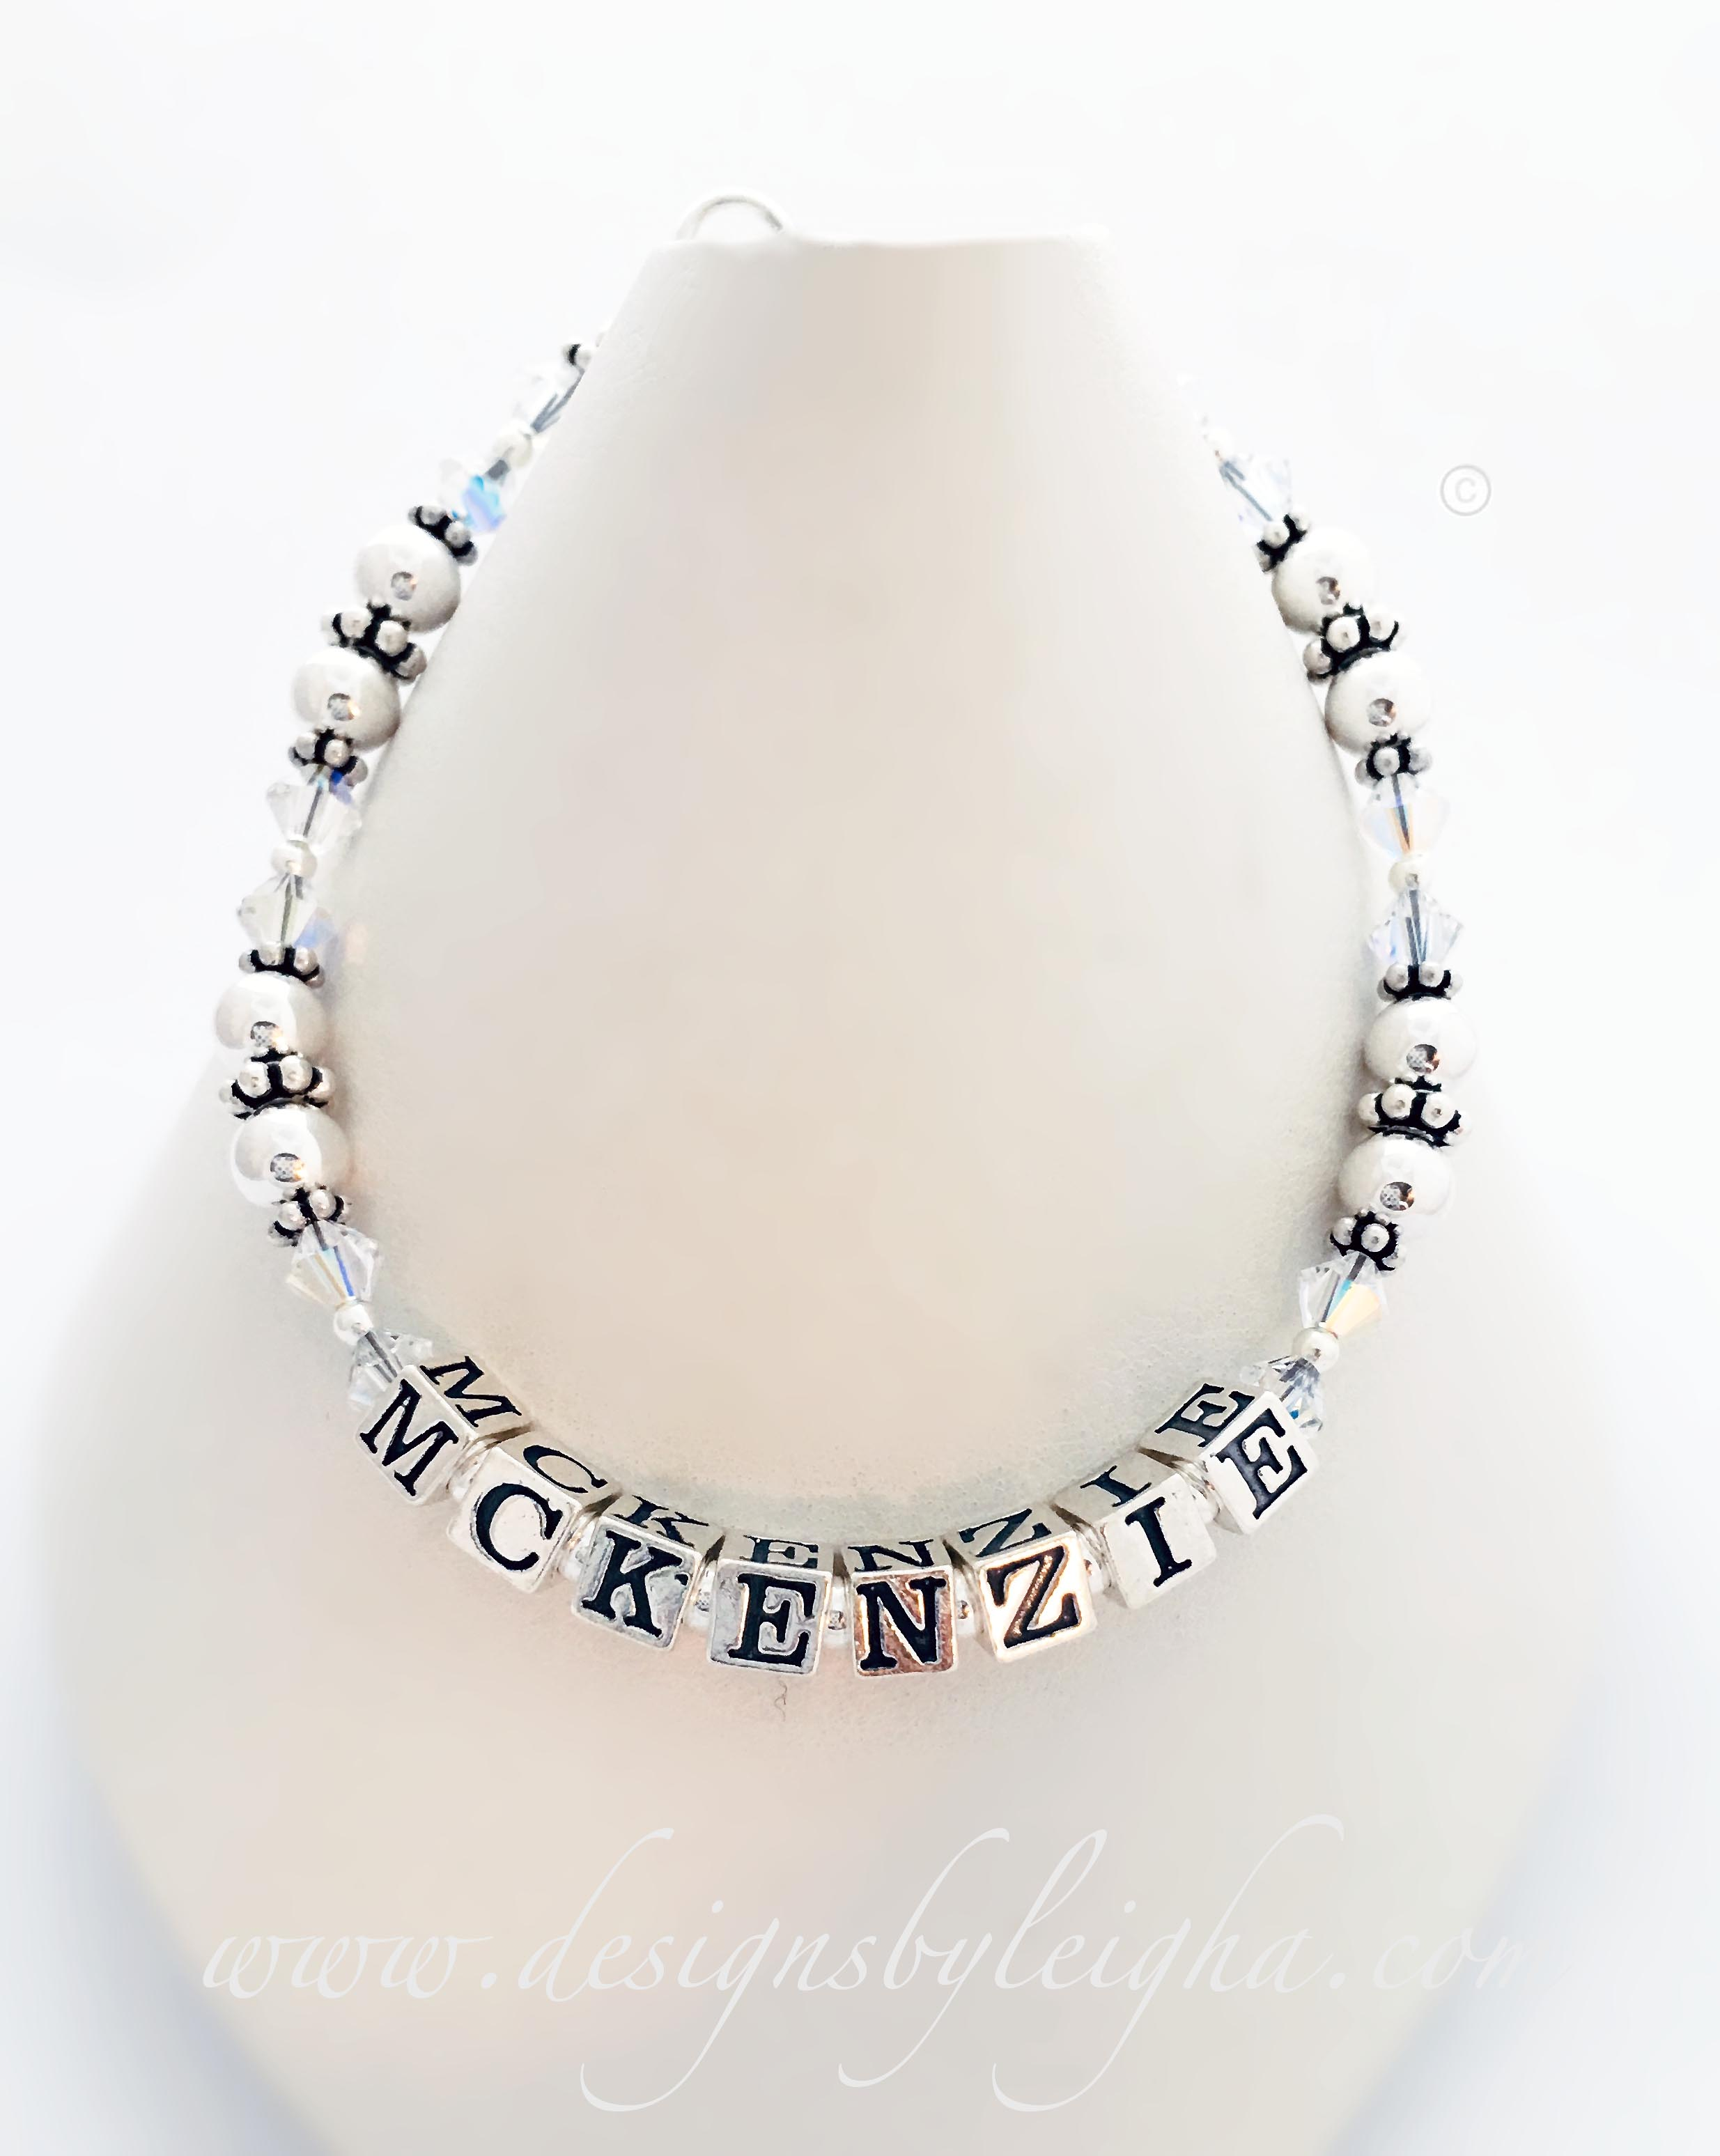 Enter: MCKENZIE / April This Mommy Mom Birthstone Bracelet is a 1-string bracelet shown McKenzie and April Birthstones (clear / diamond). Shown with a lobster claw clasp.